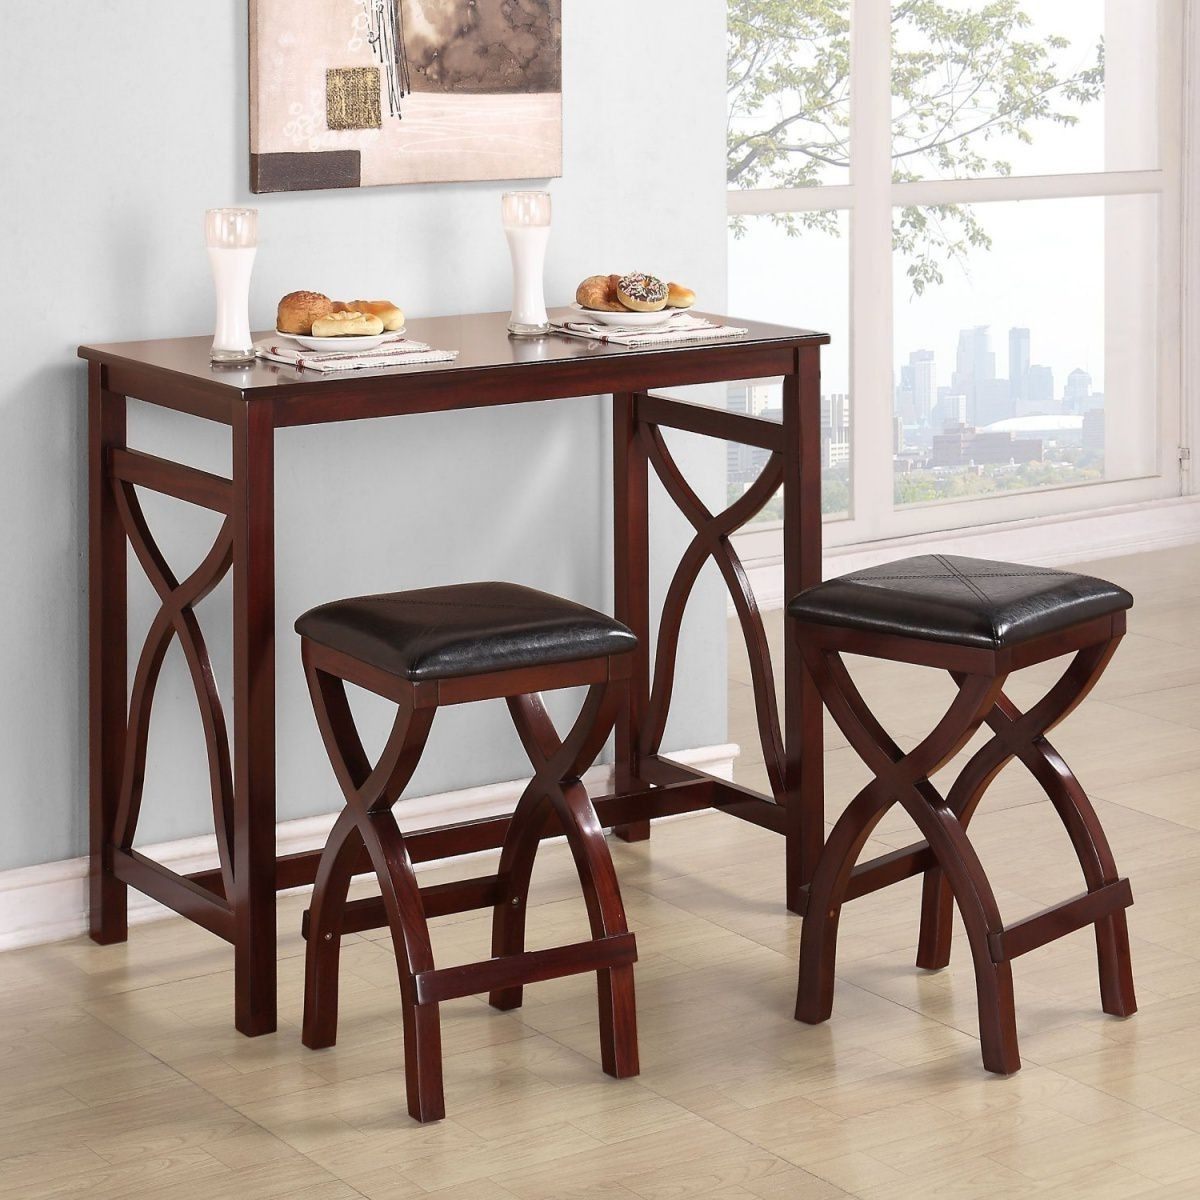 Latest Dining Tables For Small Rooms Elegant Small Dining Room Tables For With Small Dining Tables (View 20 of 25)